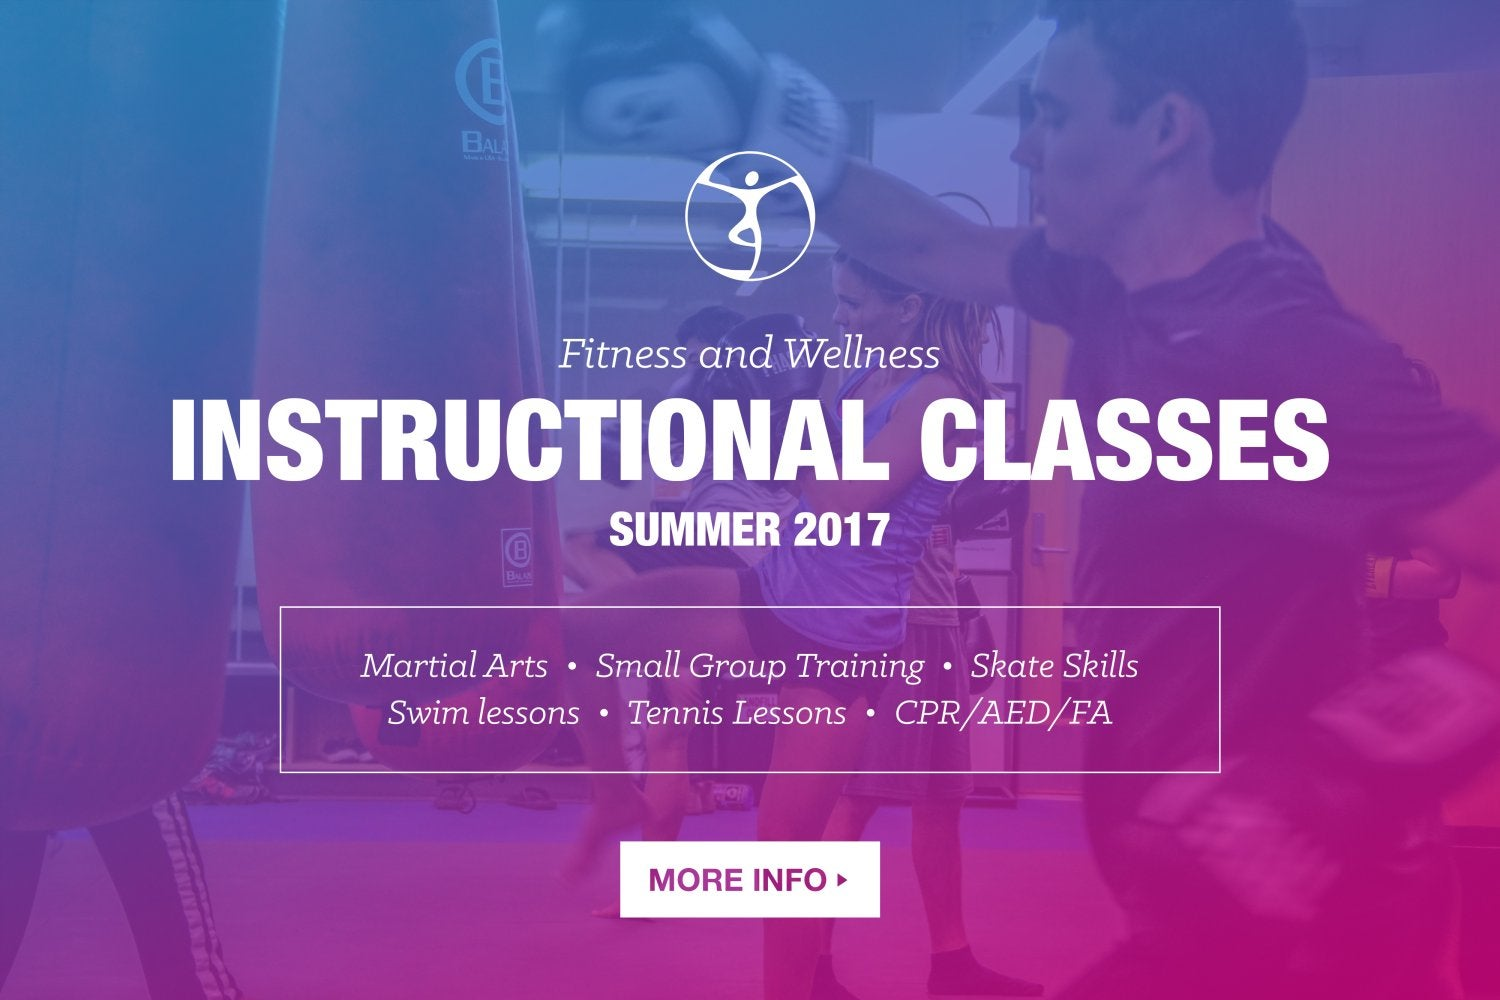 Instruction Classes. Click here for more info